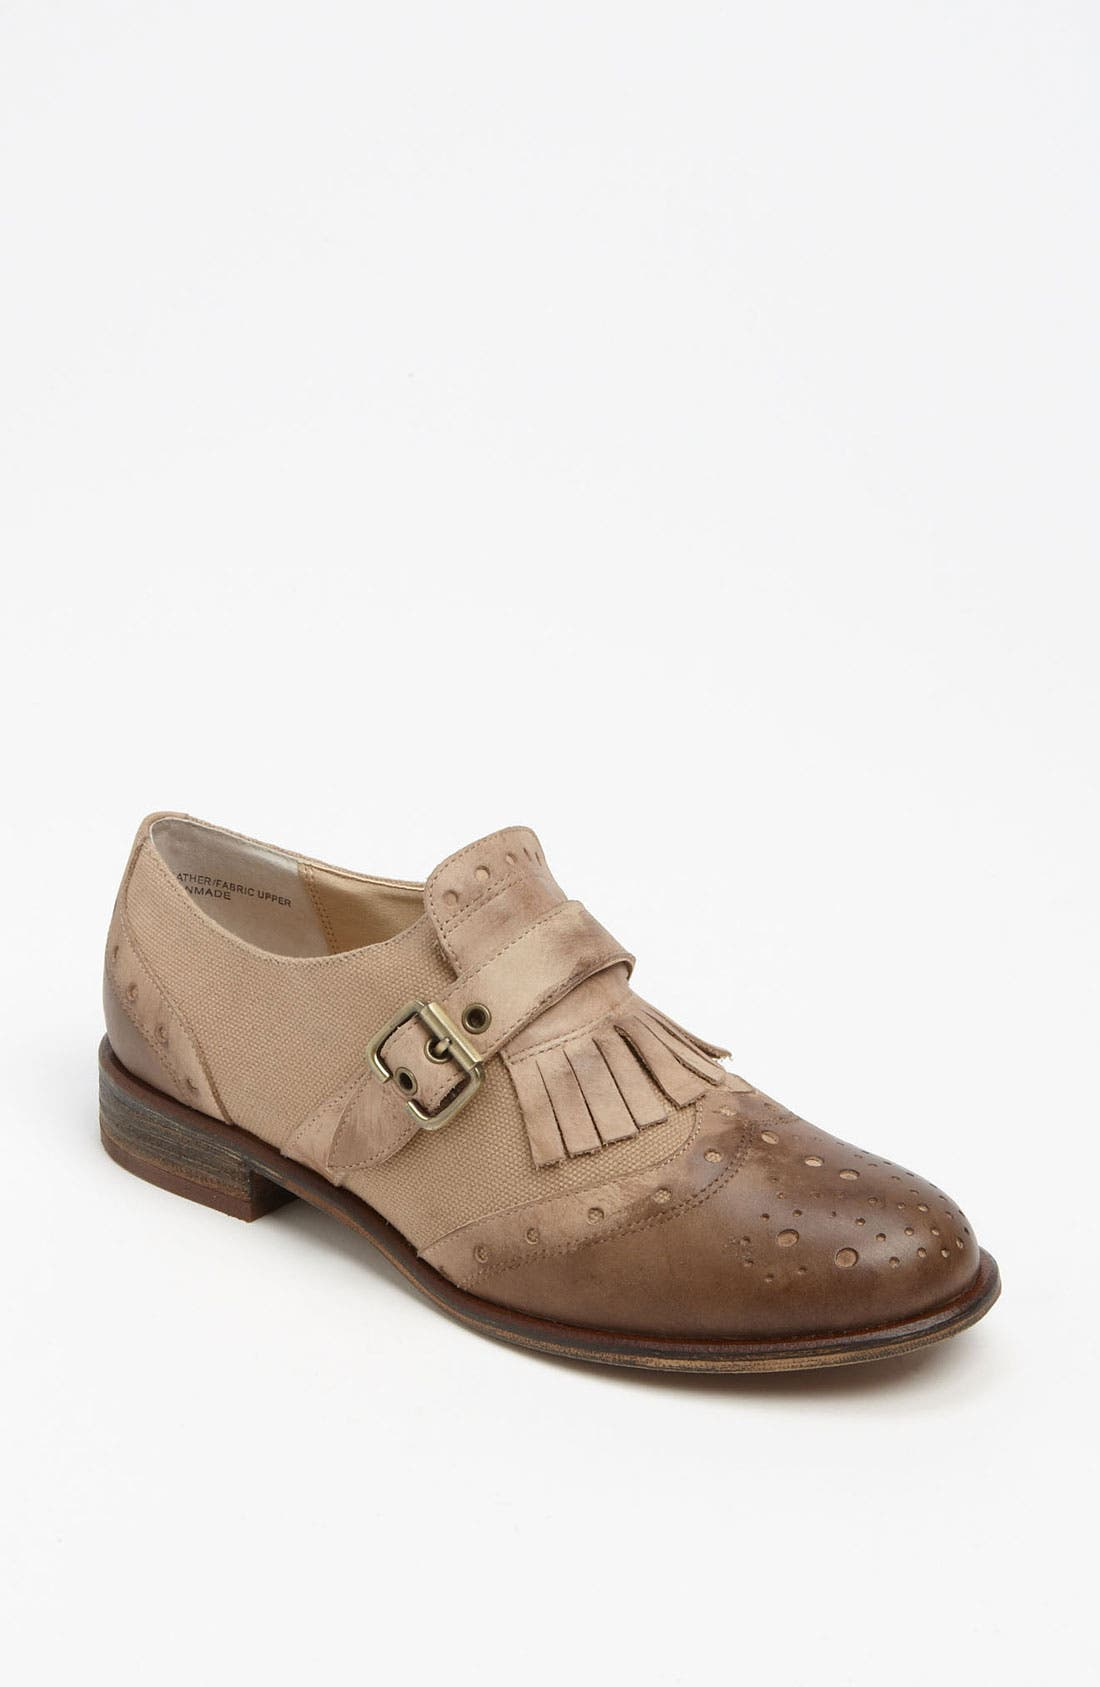 Alternate Image 1 Selected - BP. 'Foster' Loafer